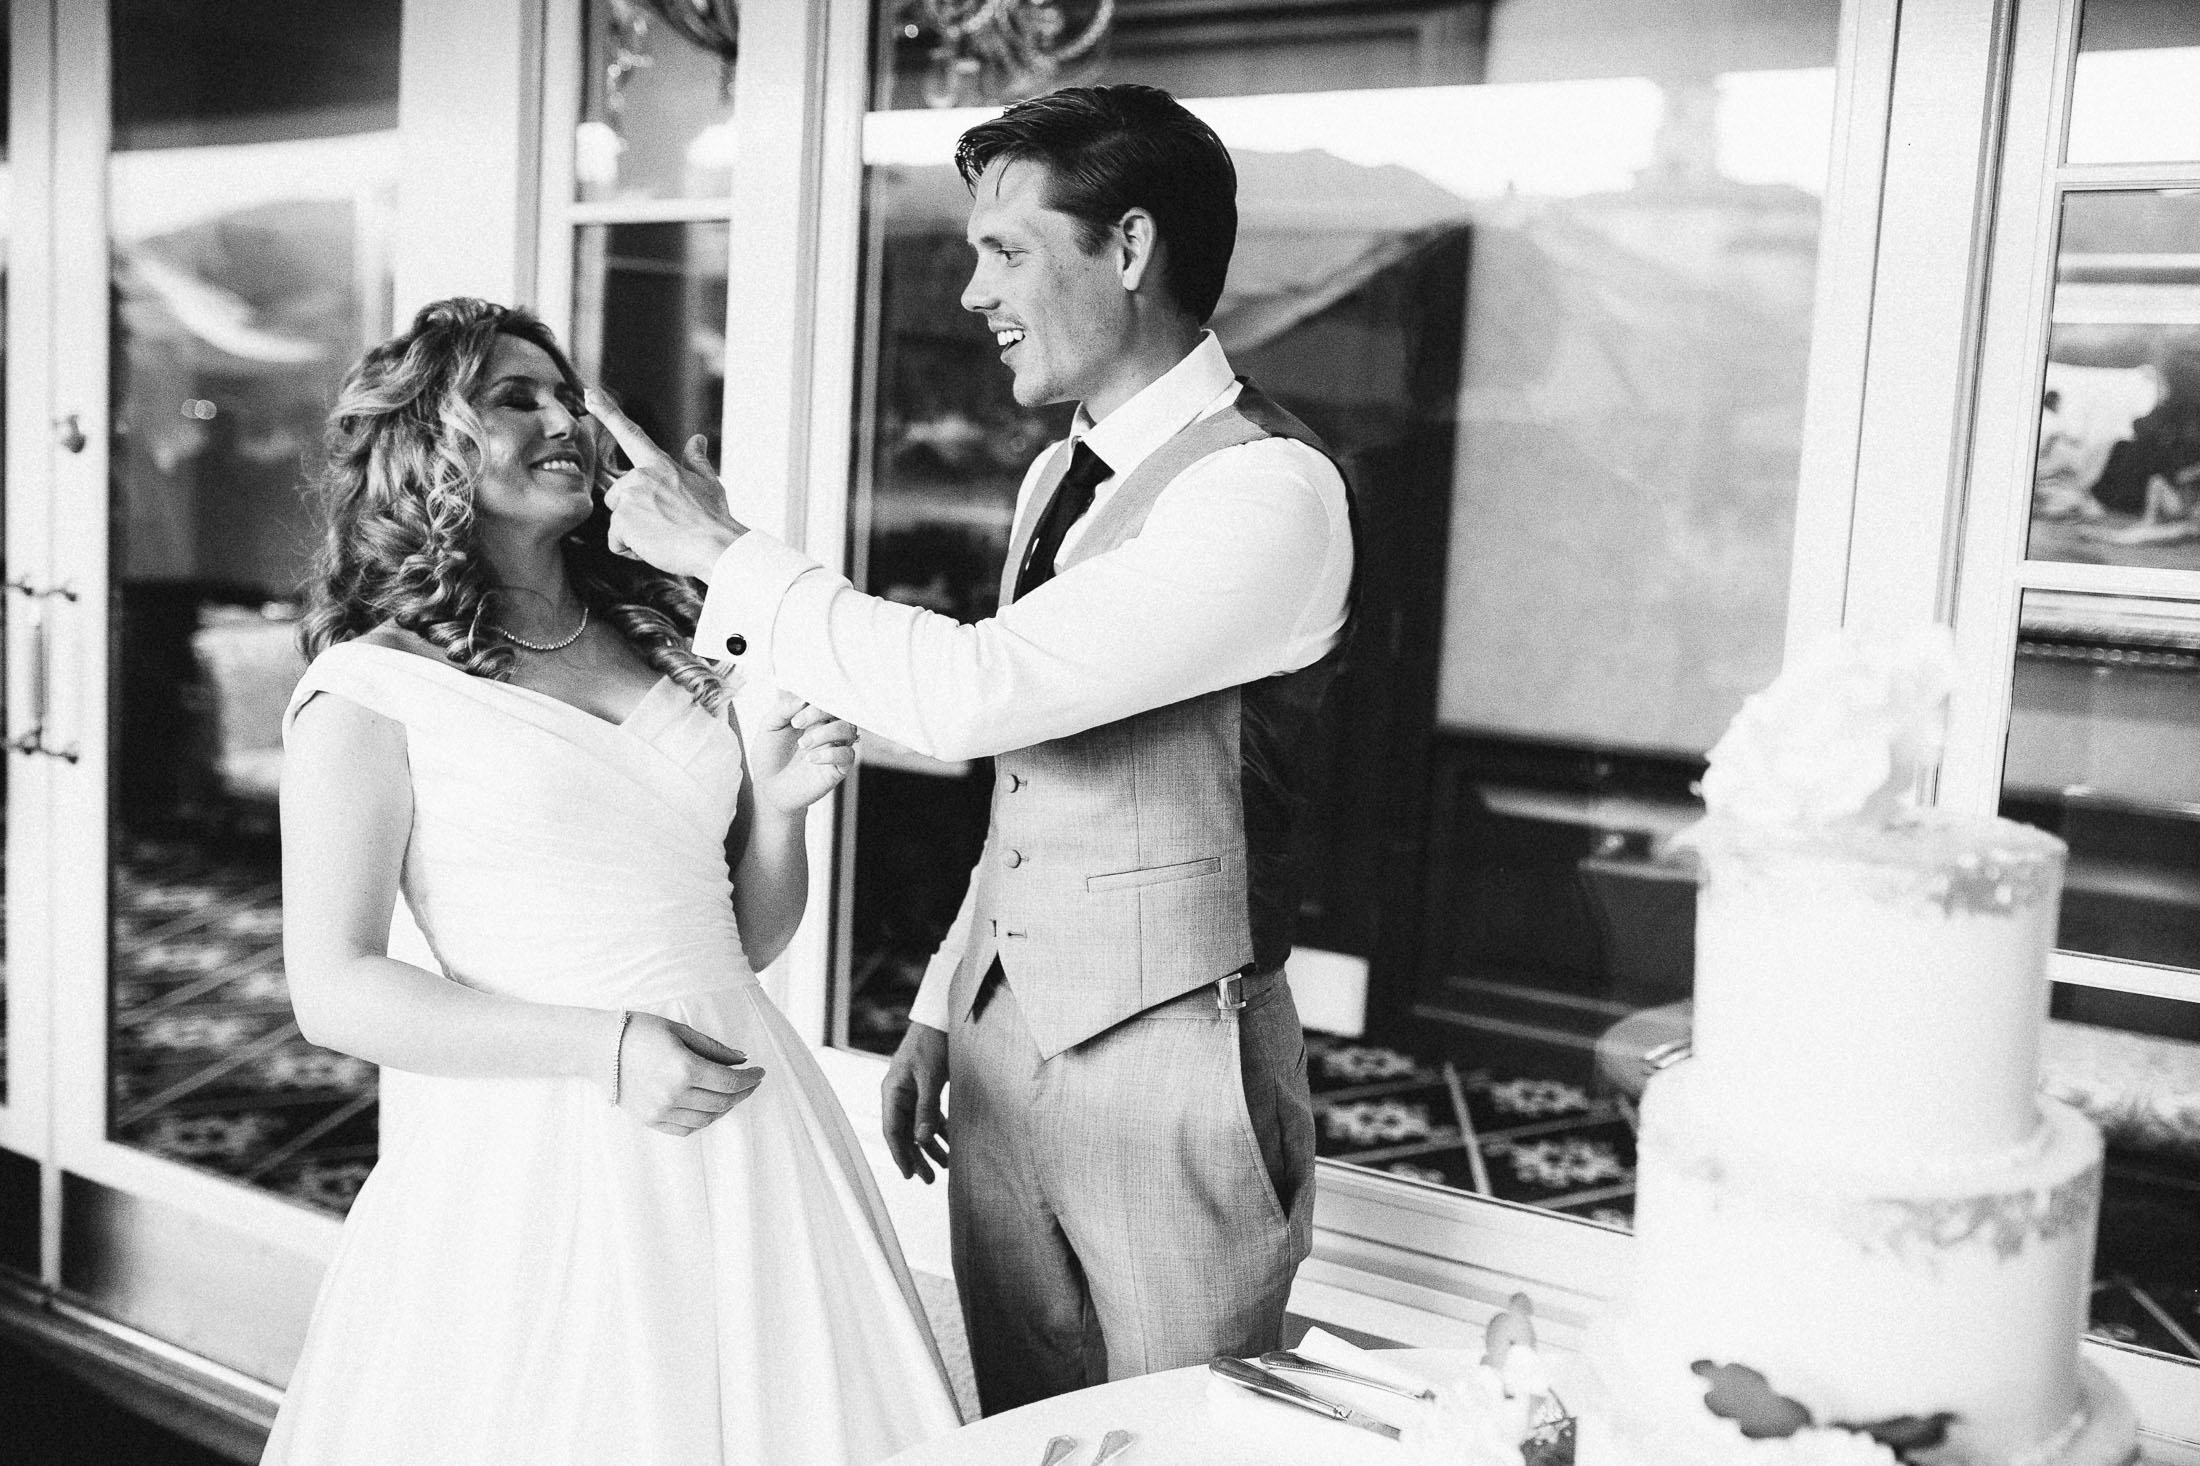 Black and white photo of groom with frosting on his finger touching bride.